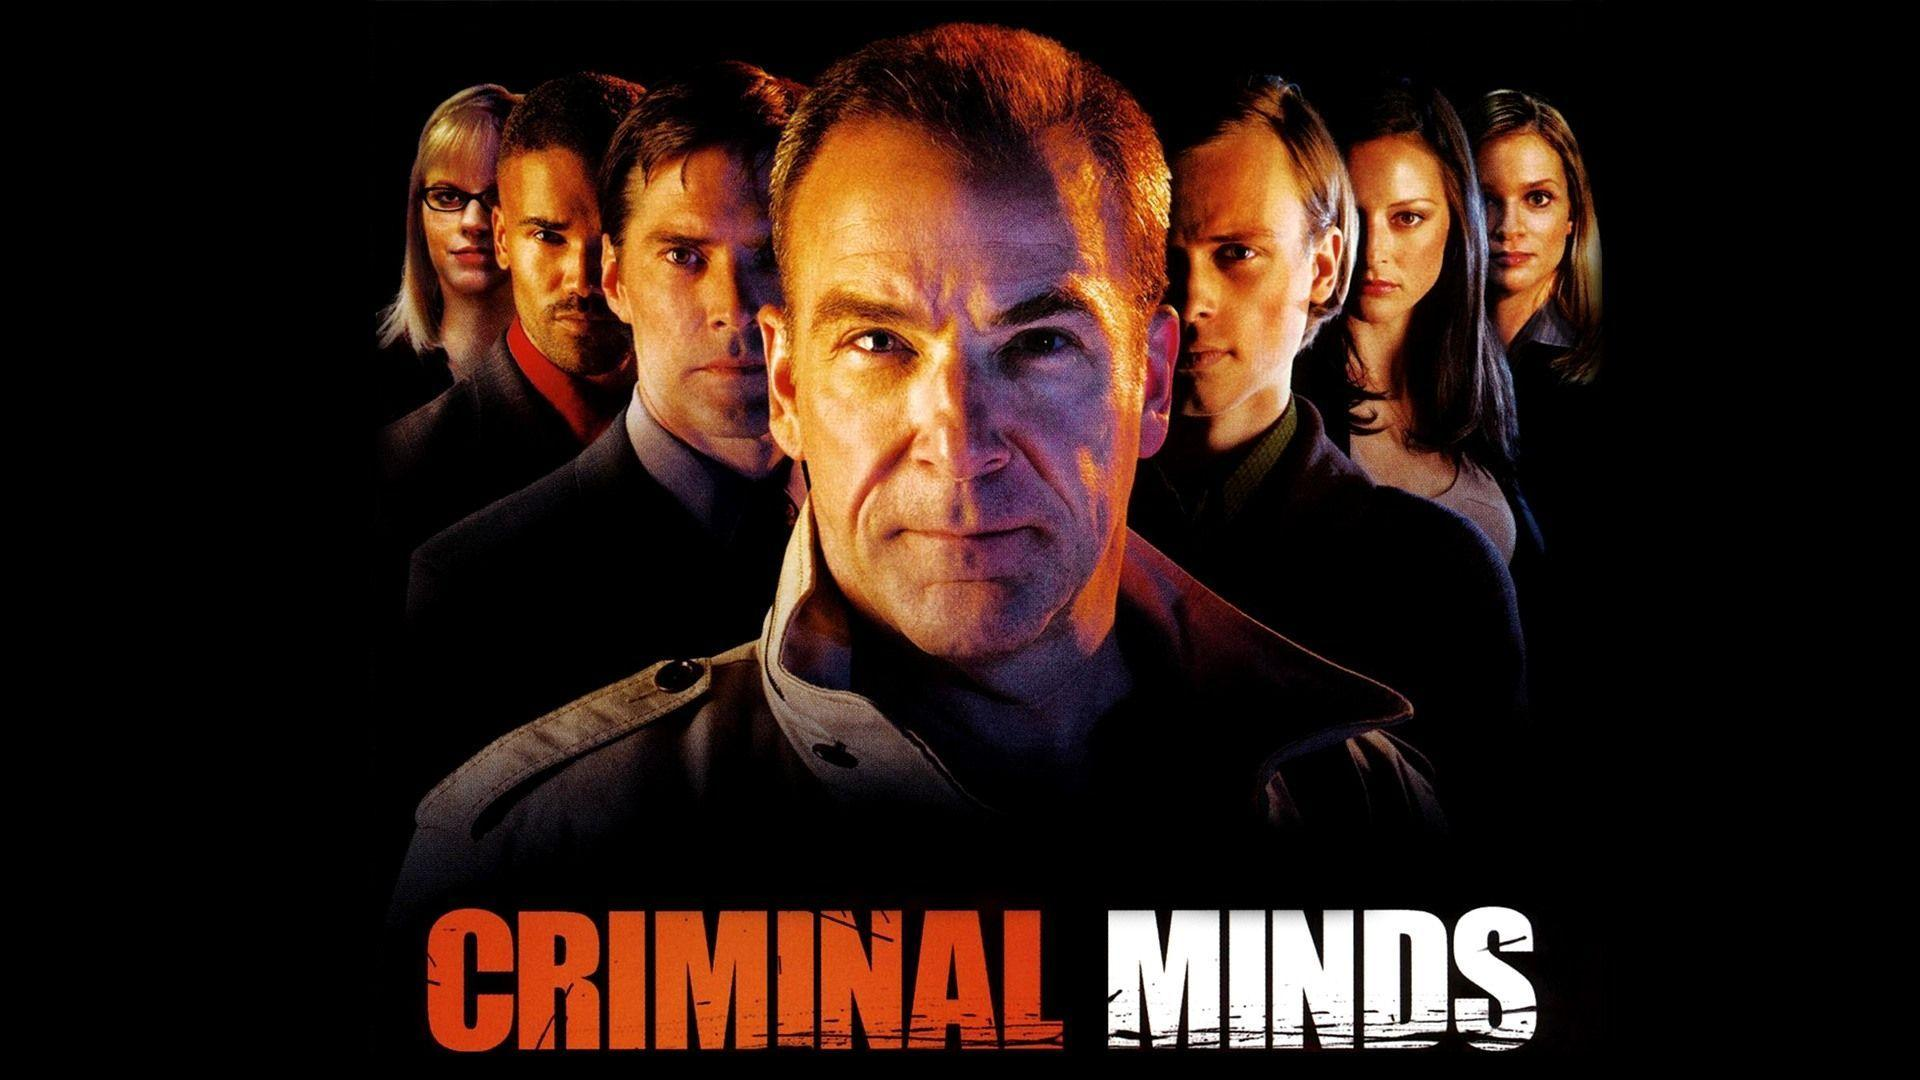 criminal minds paper Criminal minds: beyond borders is an american police procedural series created by erica messer that aired on cbs from march 16, 2016, to may 17, 2017.